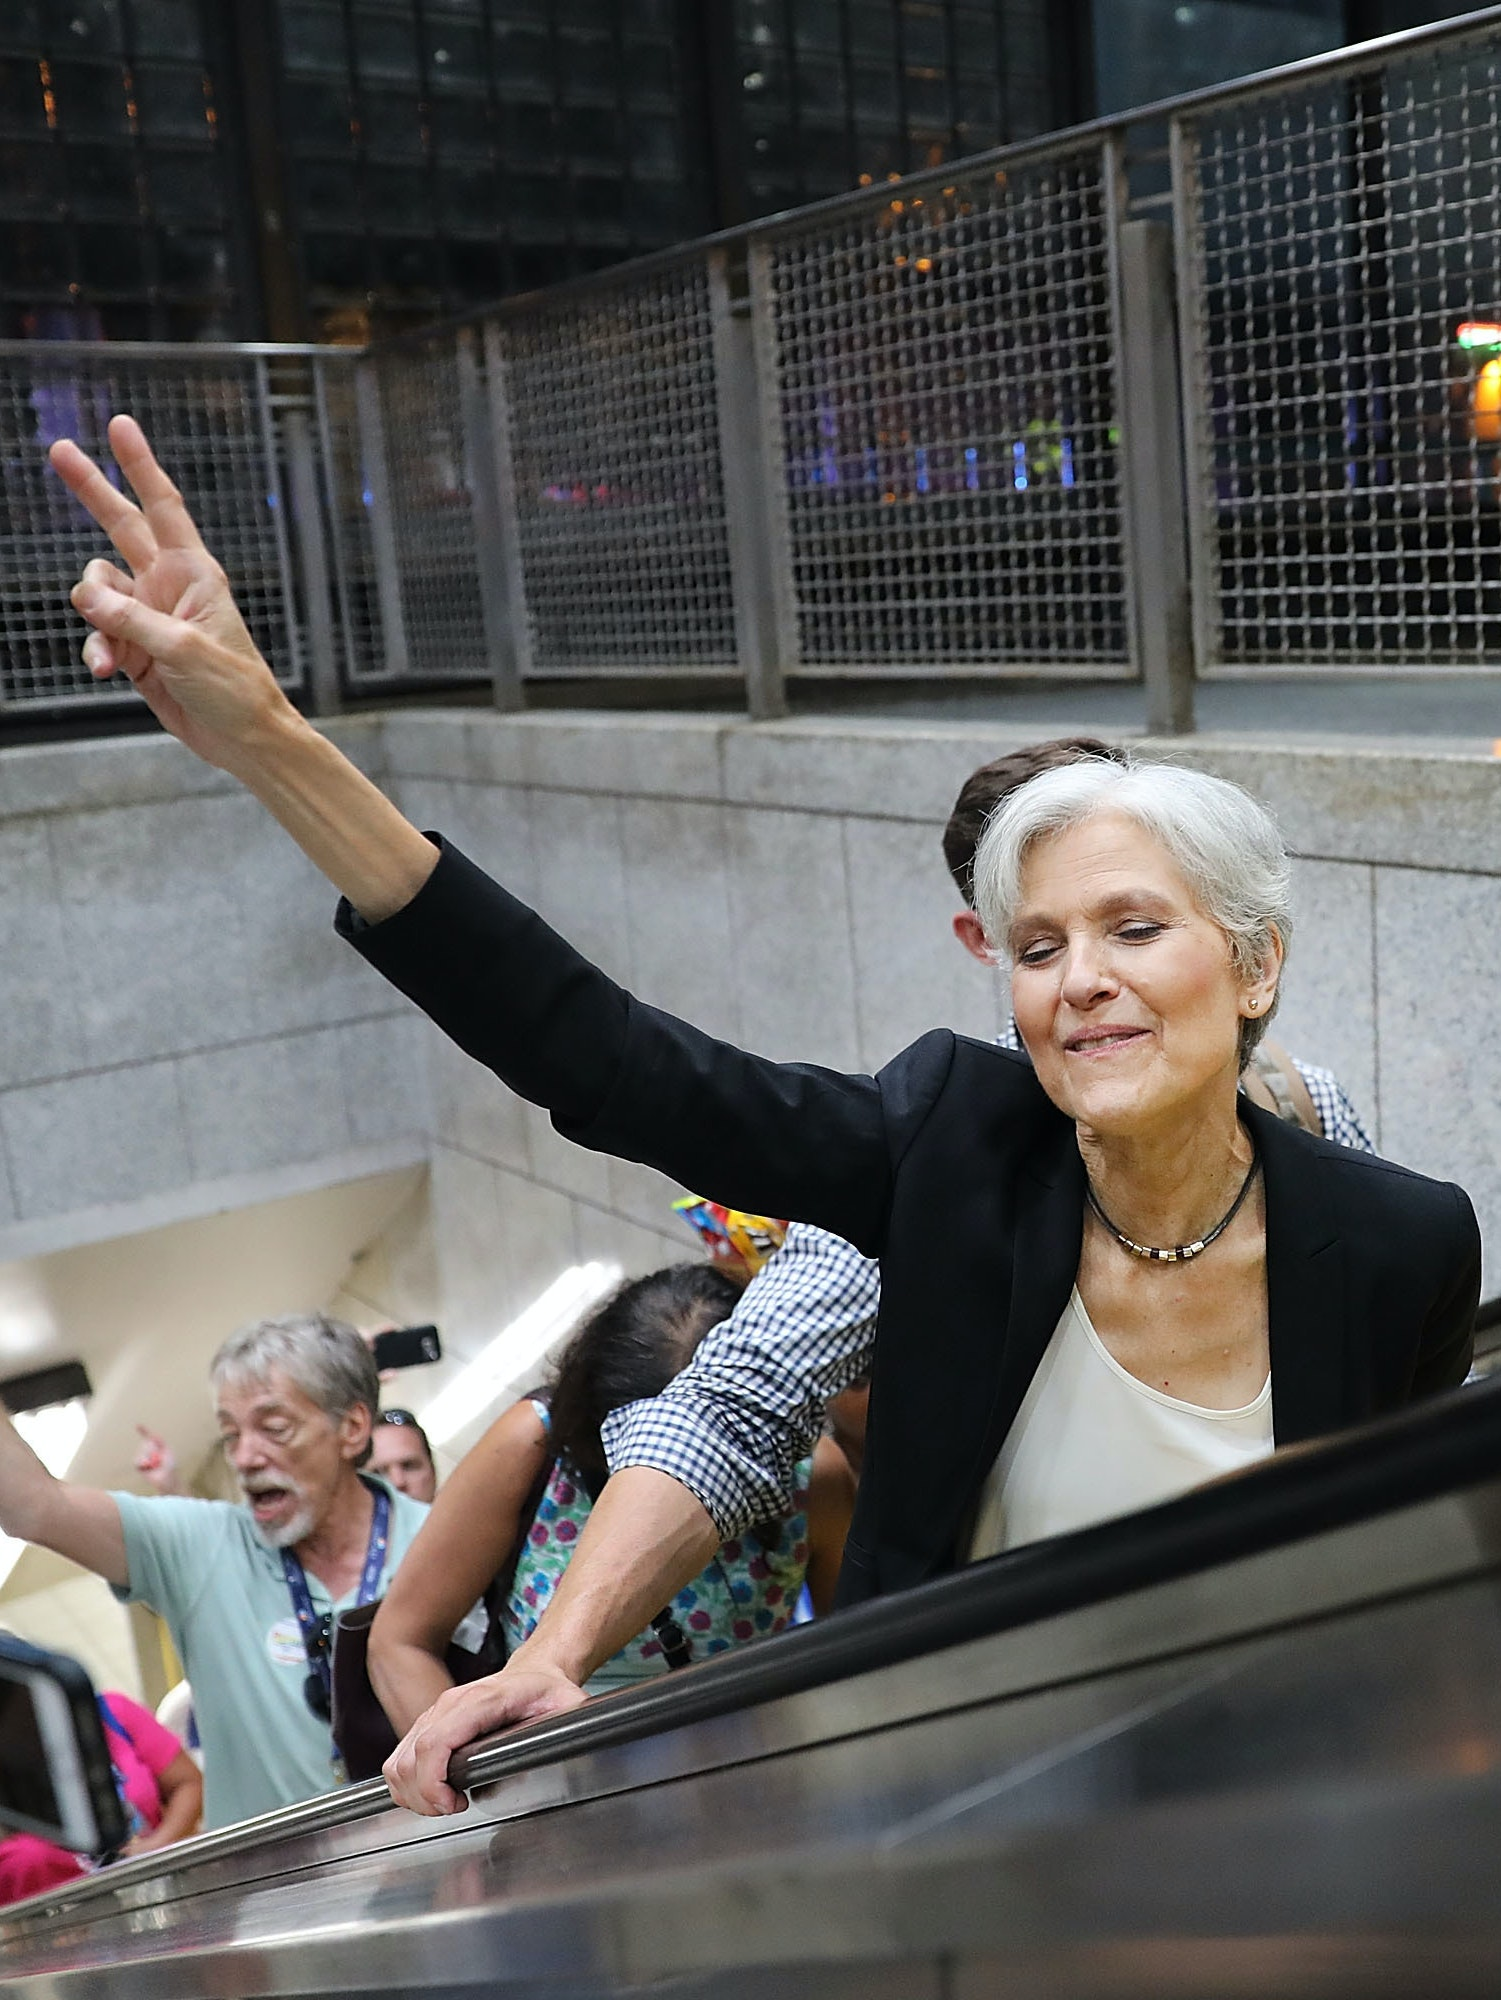 Green Party candidate Jill Stein speaks with supporters in downtown Philadelphia during events at the Democratic National Convention (DNC) on July 26, 2016.